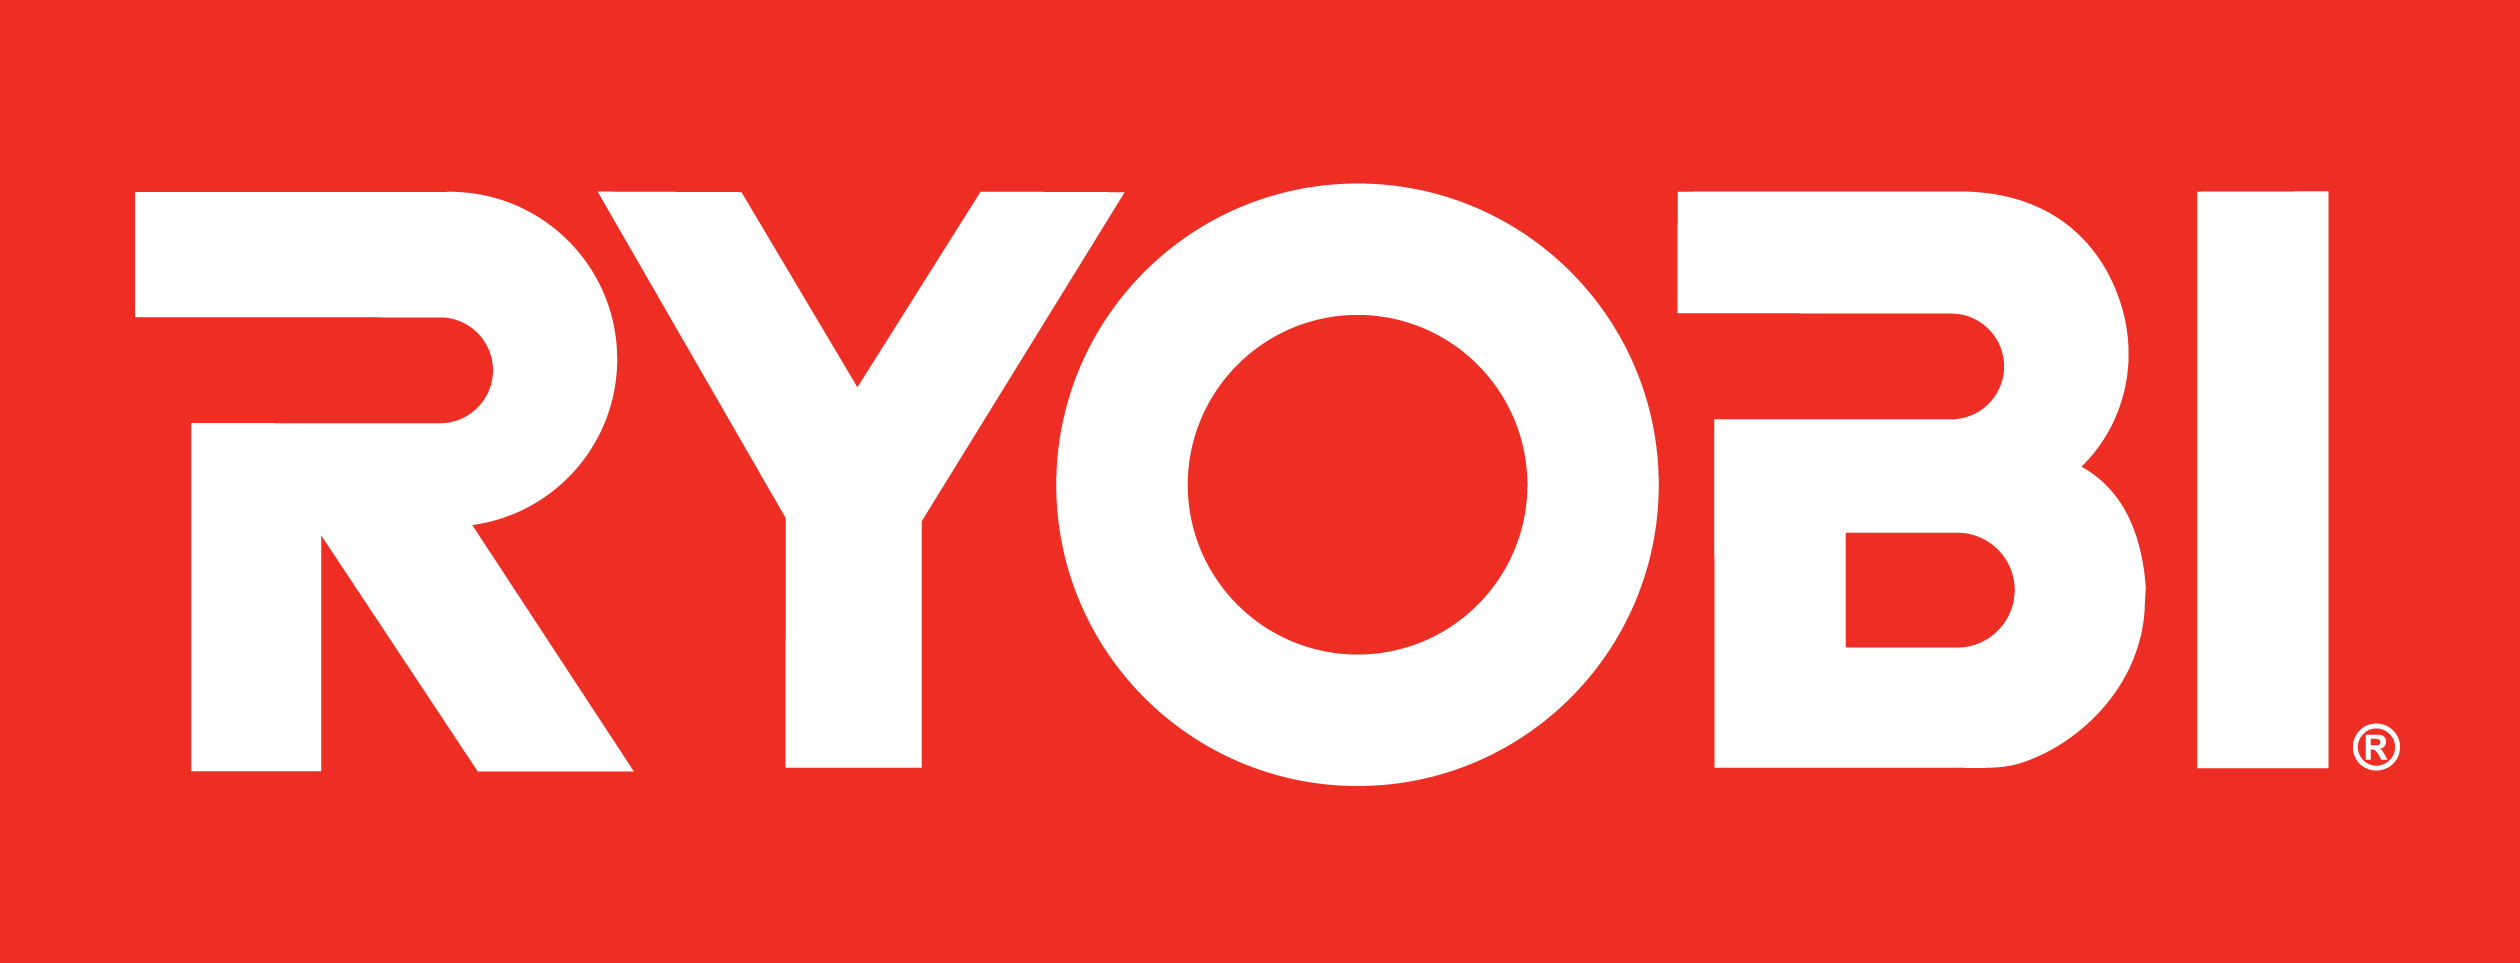 https://makitatools12blog.files.wordpress.com/2012/11/ryobi-logo1.jpg